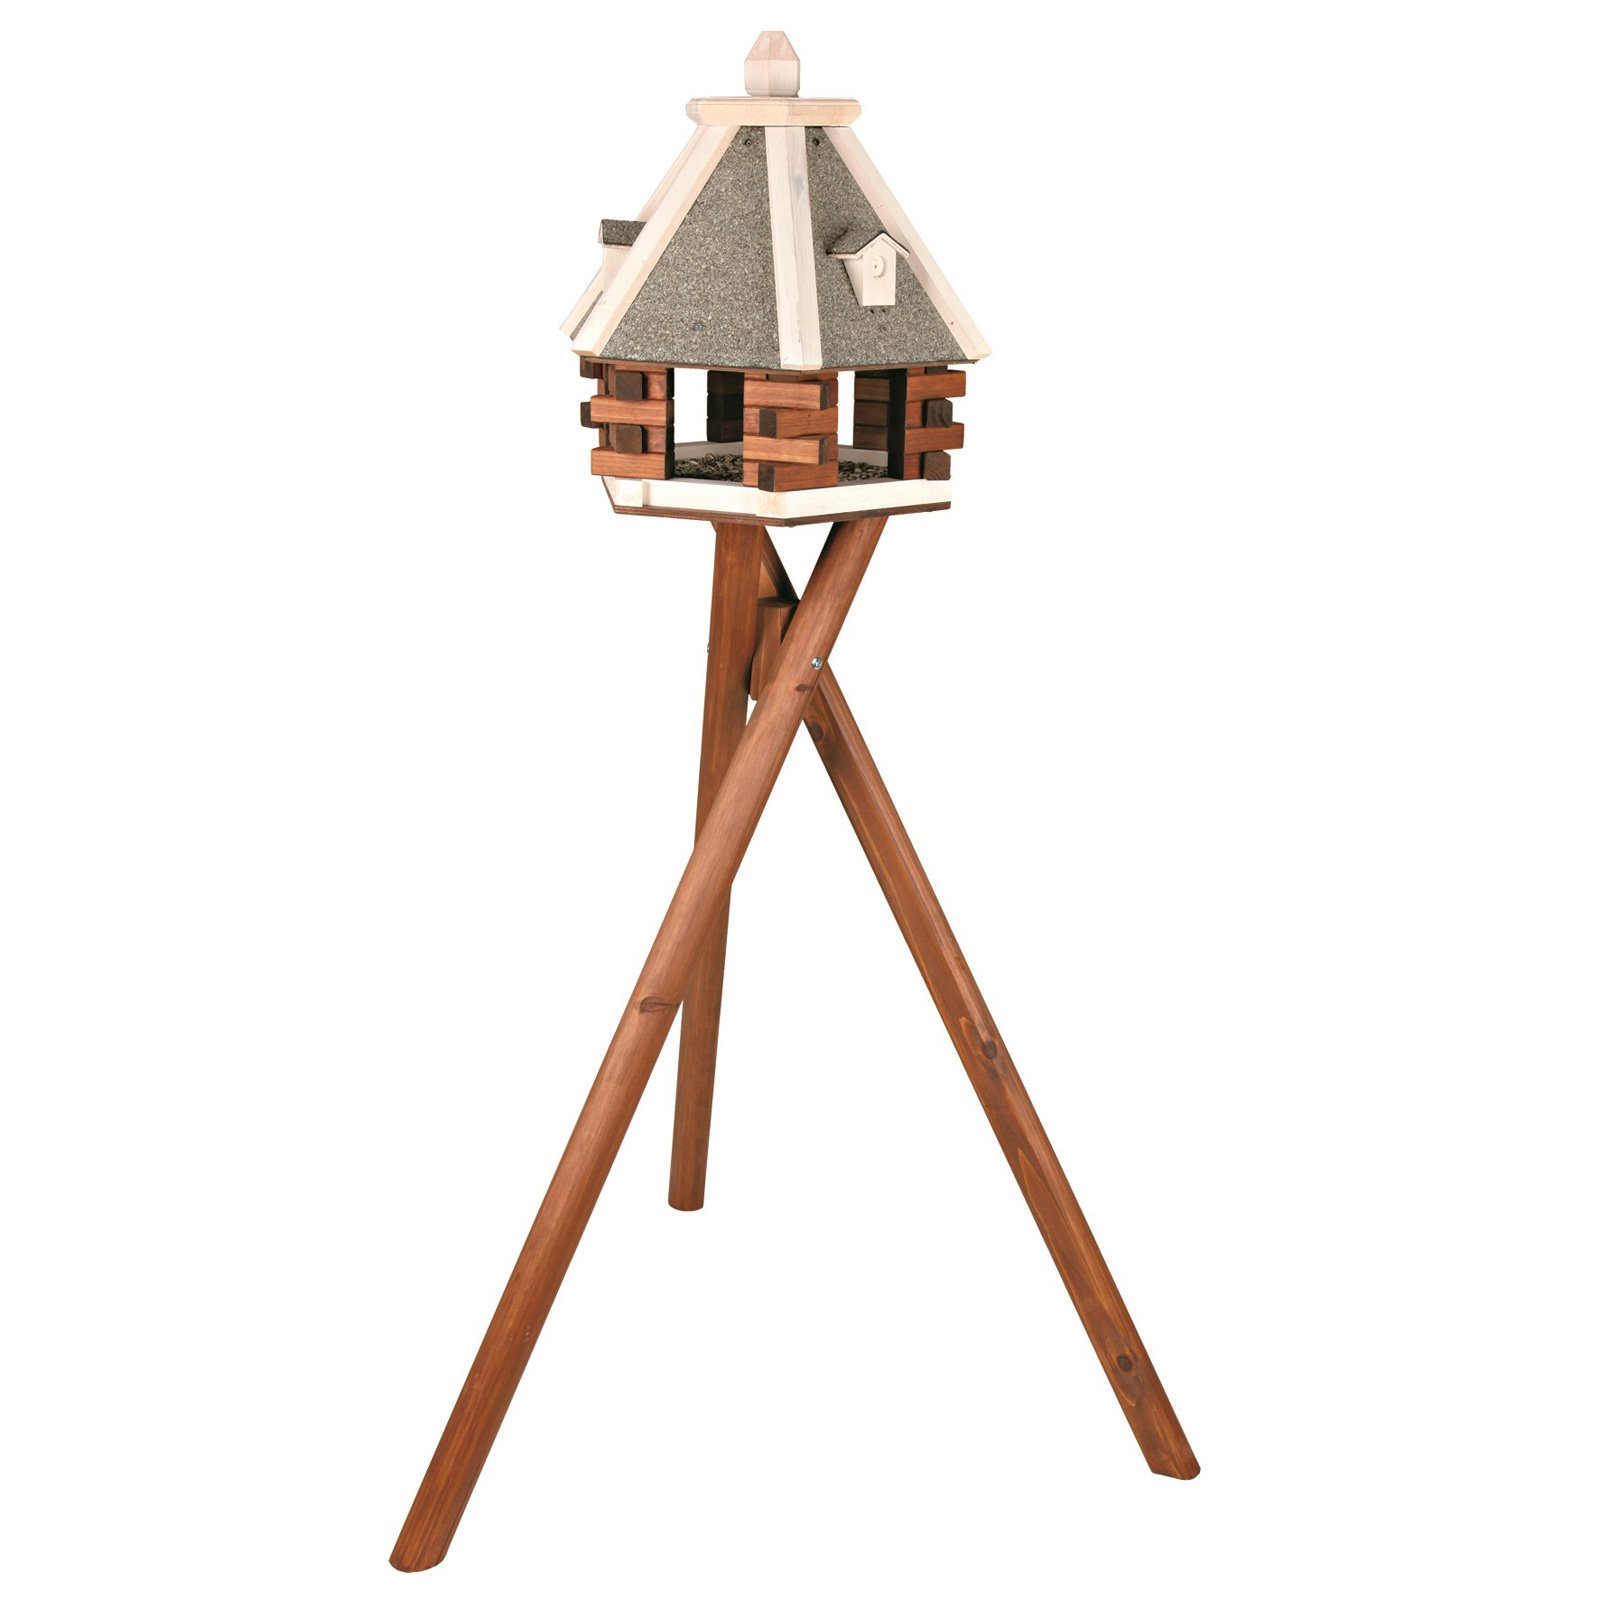 TRIXIE Nordic Wooden Birdfeeder with Stand by Trixie Pet Products